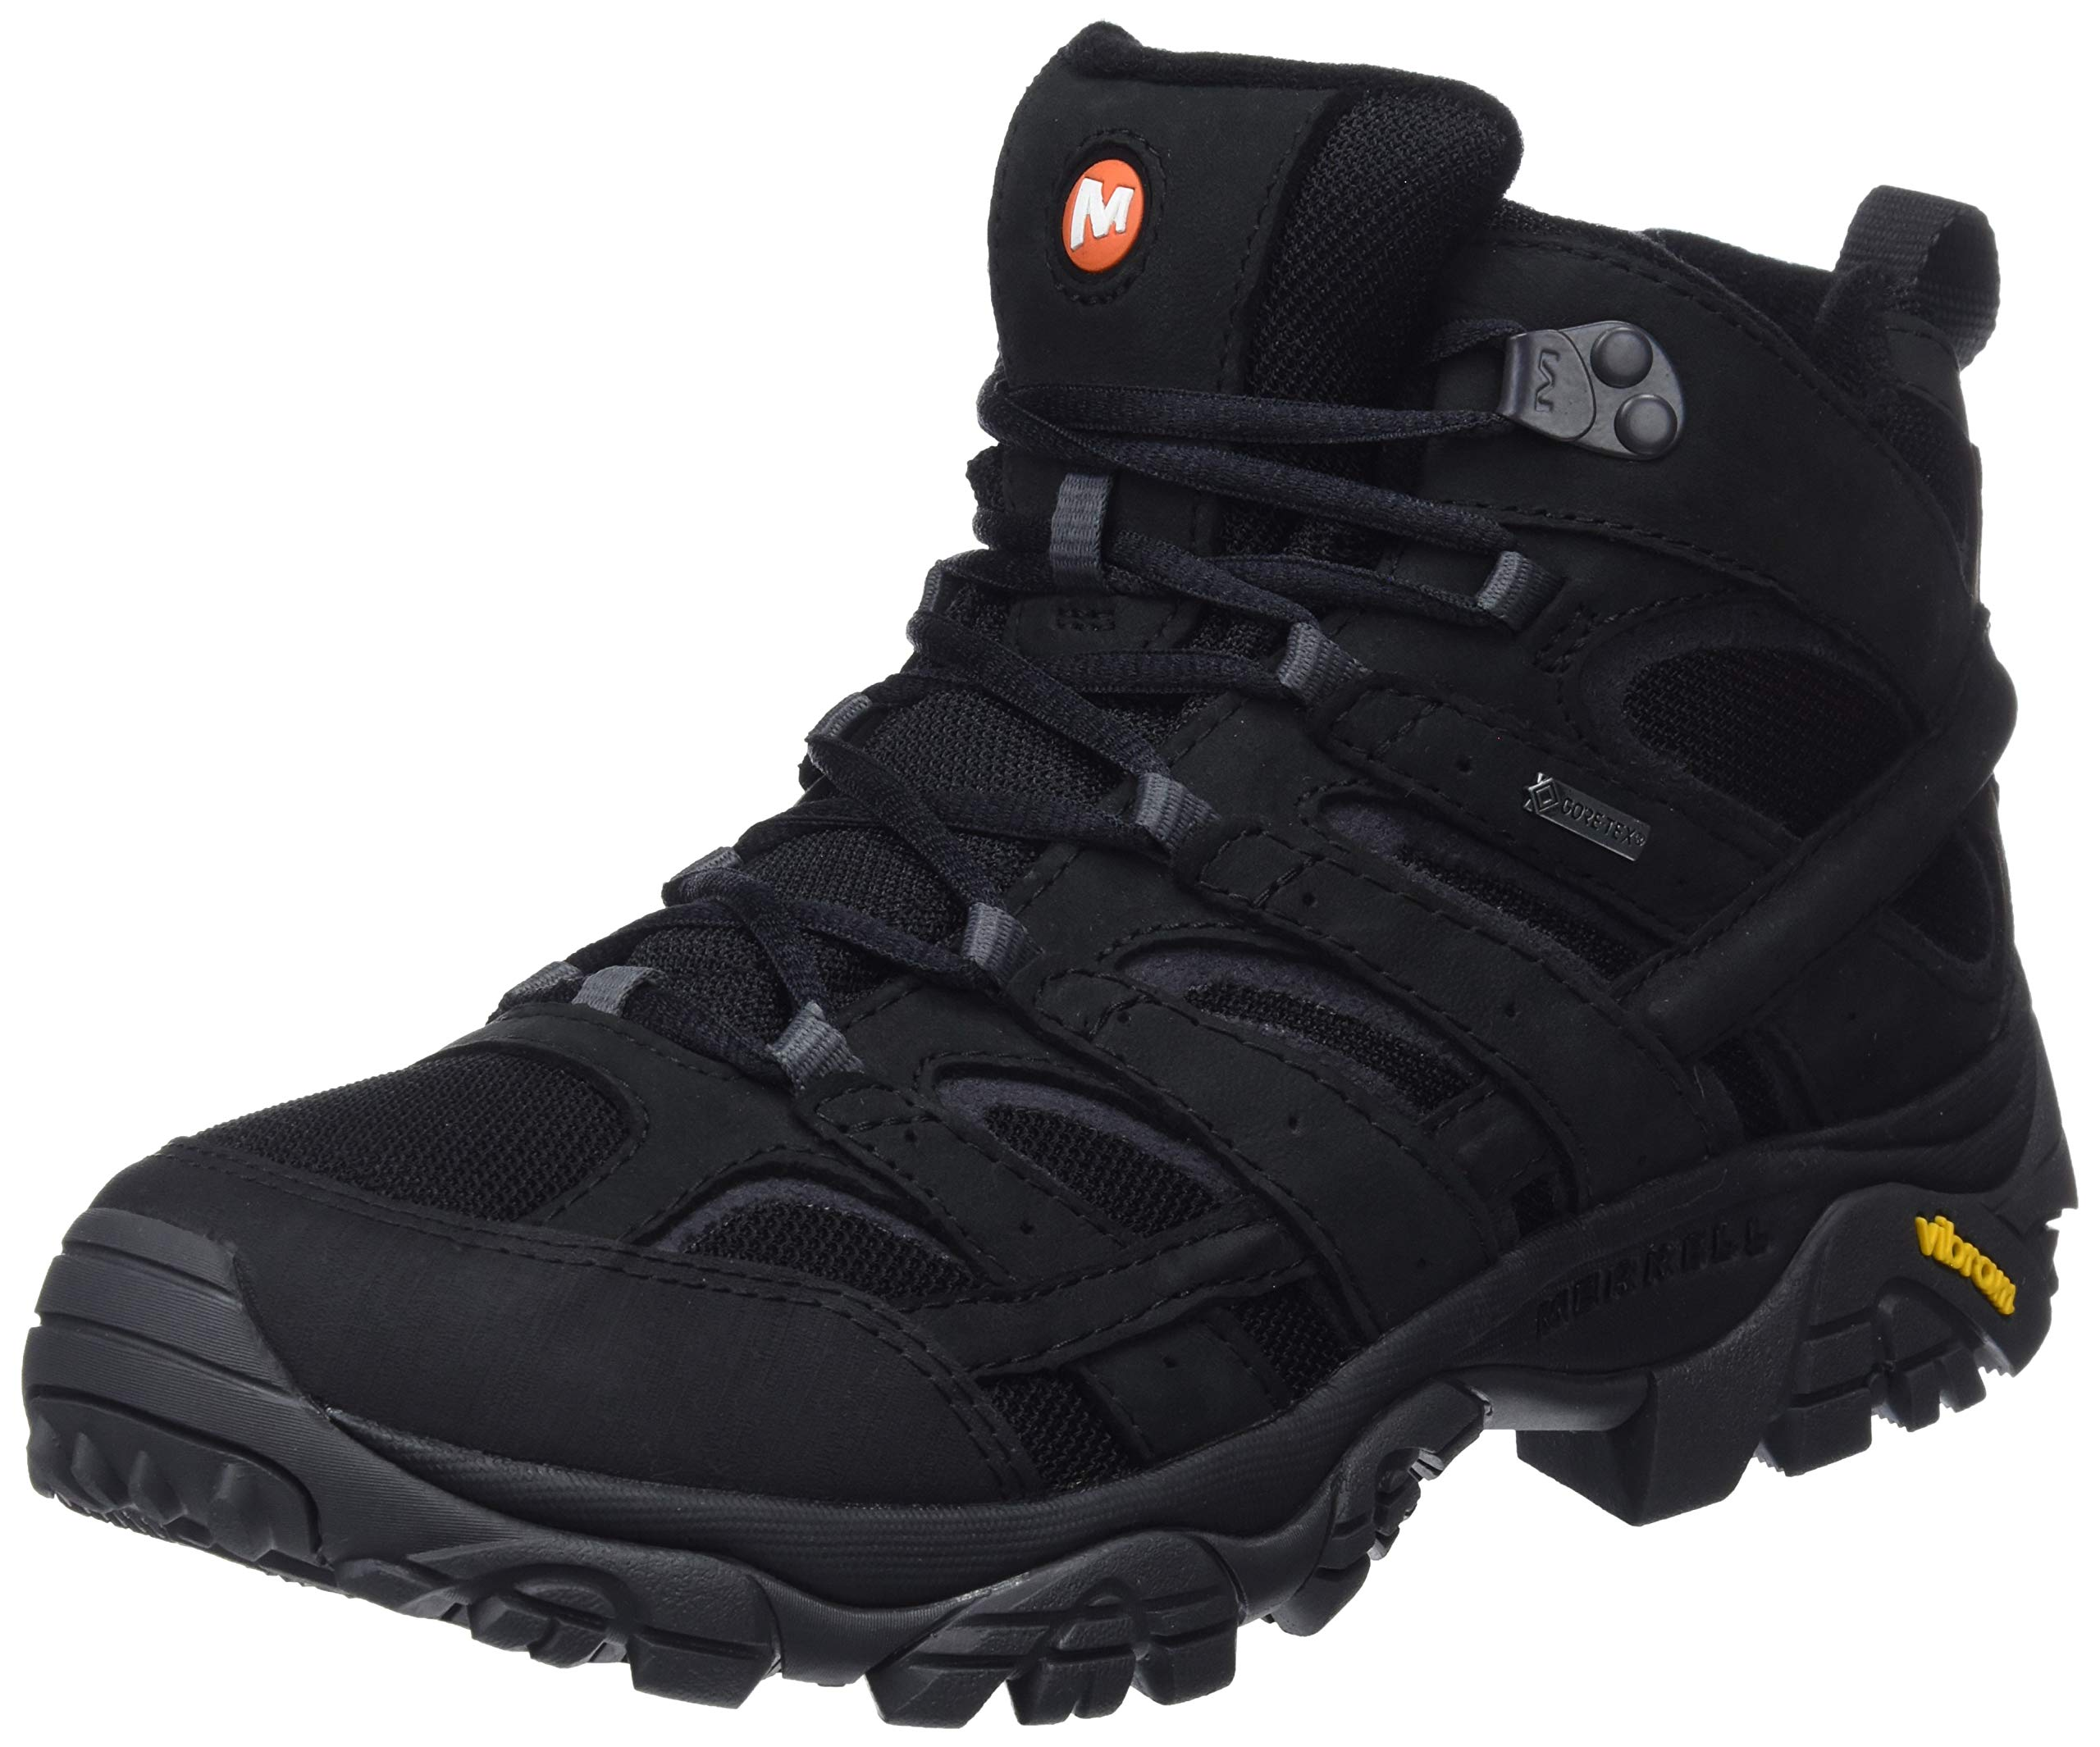 Smooth Mid GTX High Rise Hiking Boots